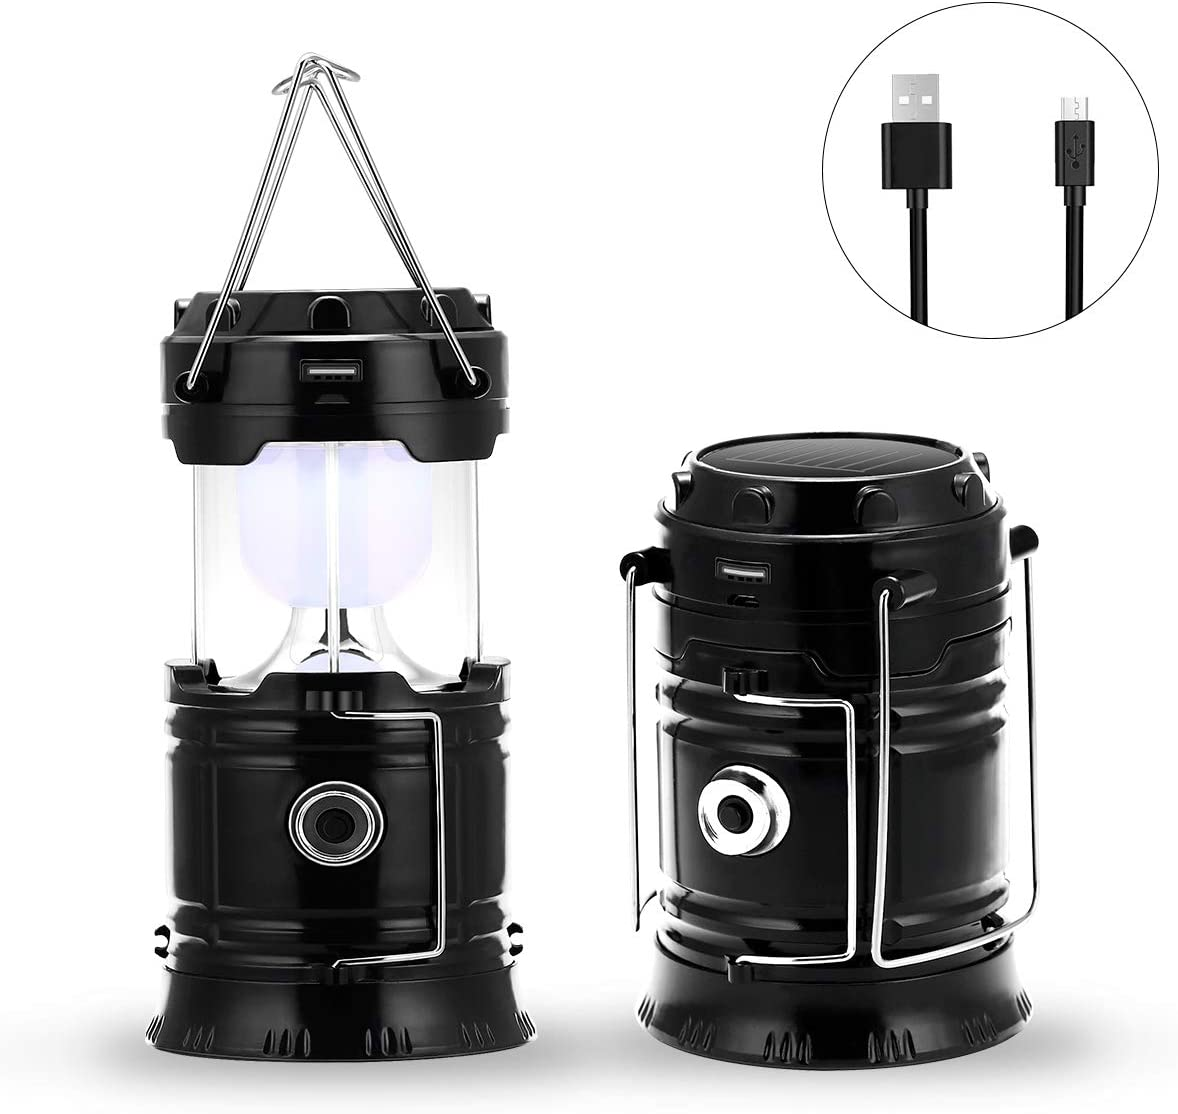 Fishing LED Portable Flashlight Suitable for Outdoor Hiking Fulighture Solar Camping Lantern Water Resistant Ultra Bright Collapsible 2 Pack Black Outages Camping USB Charging Emergencies